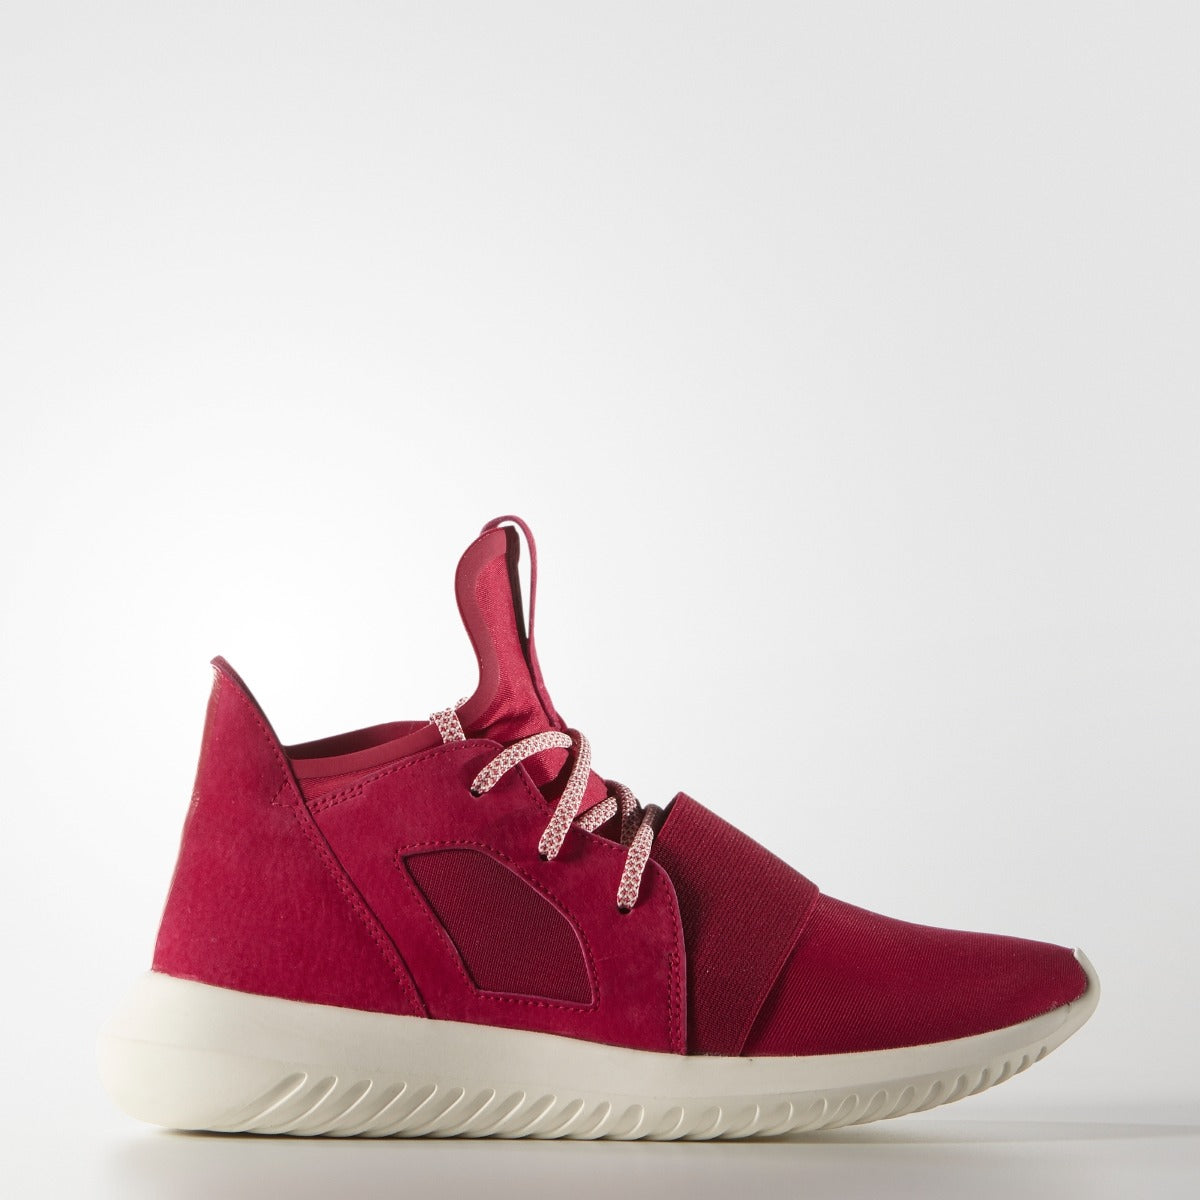 online store 40872 6f782 Women s Adidas Originals Tubular Defiant Shoes Unity Pink